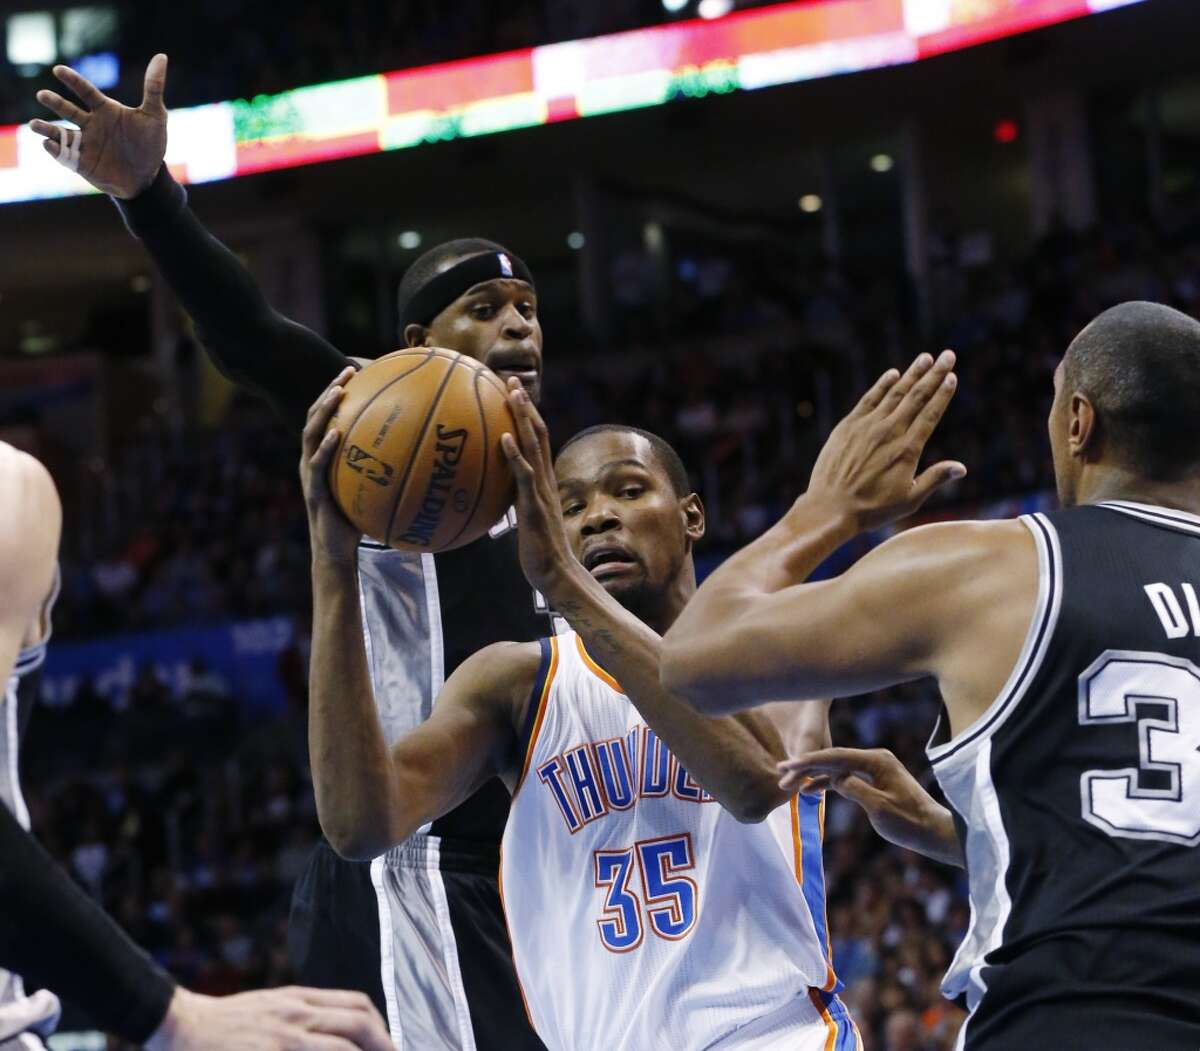 Oklahoma City Thunder forward Kevin Durant (35) drives between San Antonio Spurs guard Stephen Jackson (3) and forward Boris Diaw (33) in the second quarter of an NBA basketball game in Oklahoma City, Monday, Dec. 17, 2012. (Sue Ogrocki / Associated Press)